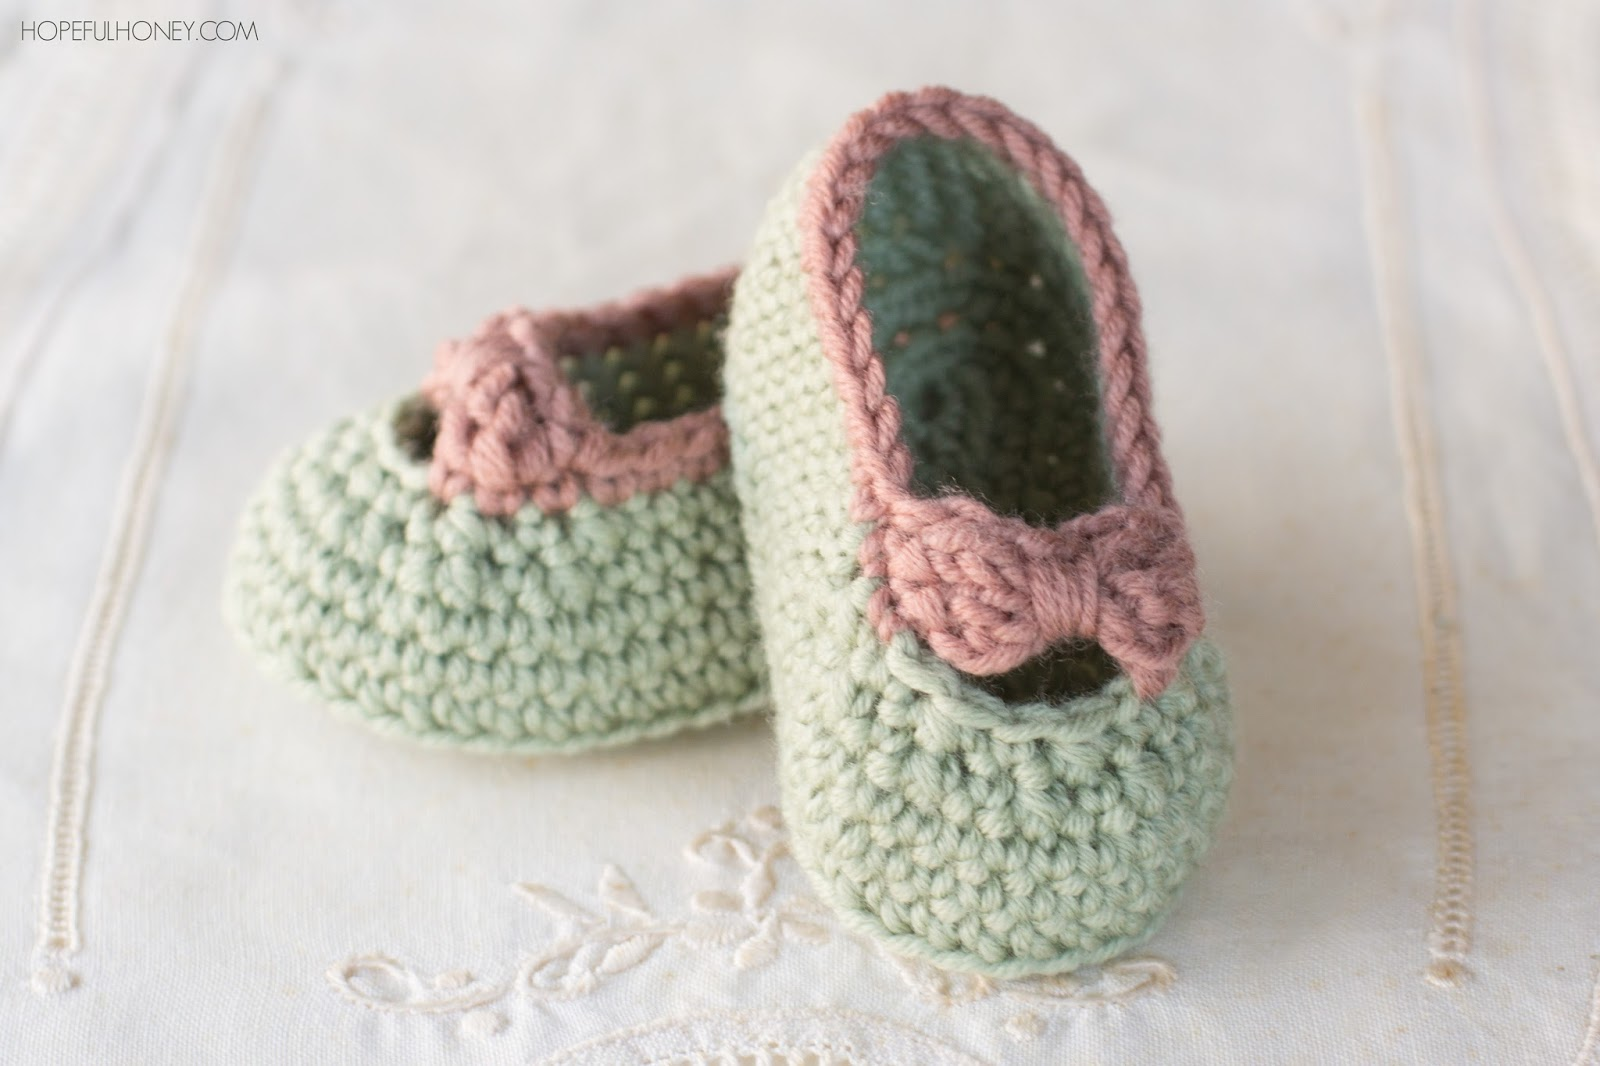 Crochet Baby Booties Pattern With Pictures : Hopeful Honey Craft, Crochet, Create: Little Lady Baby ...